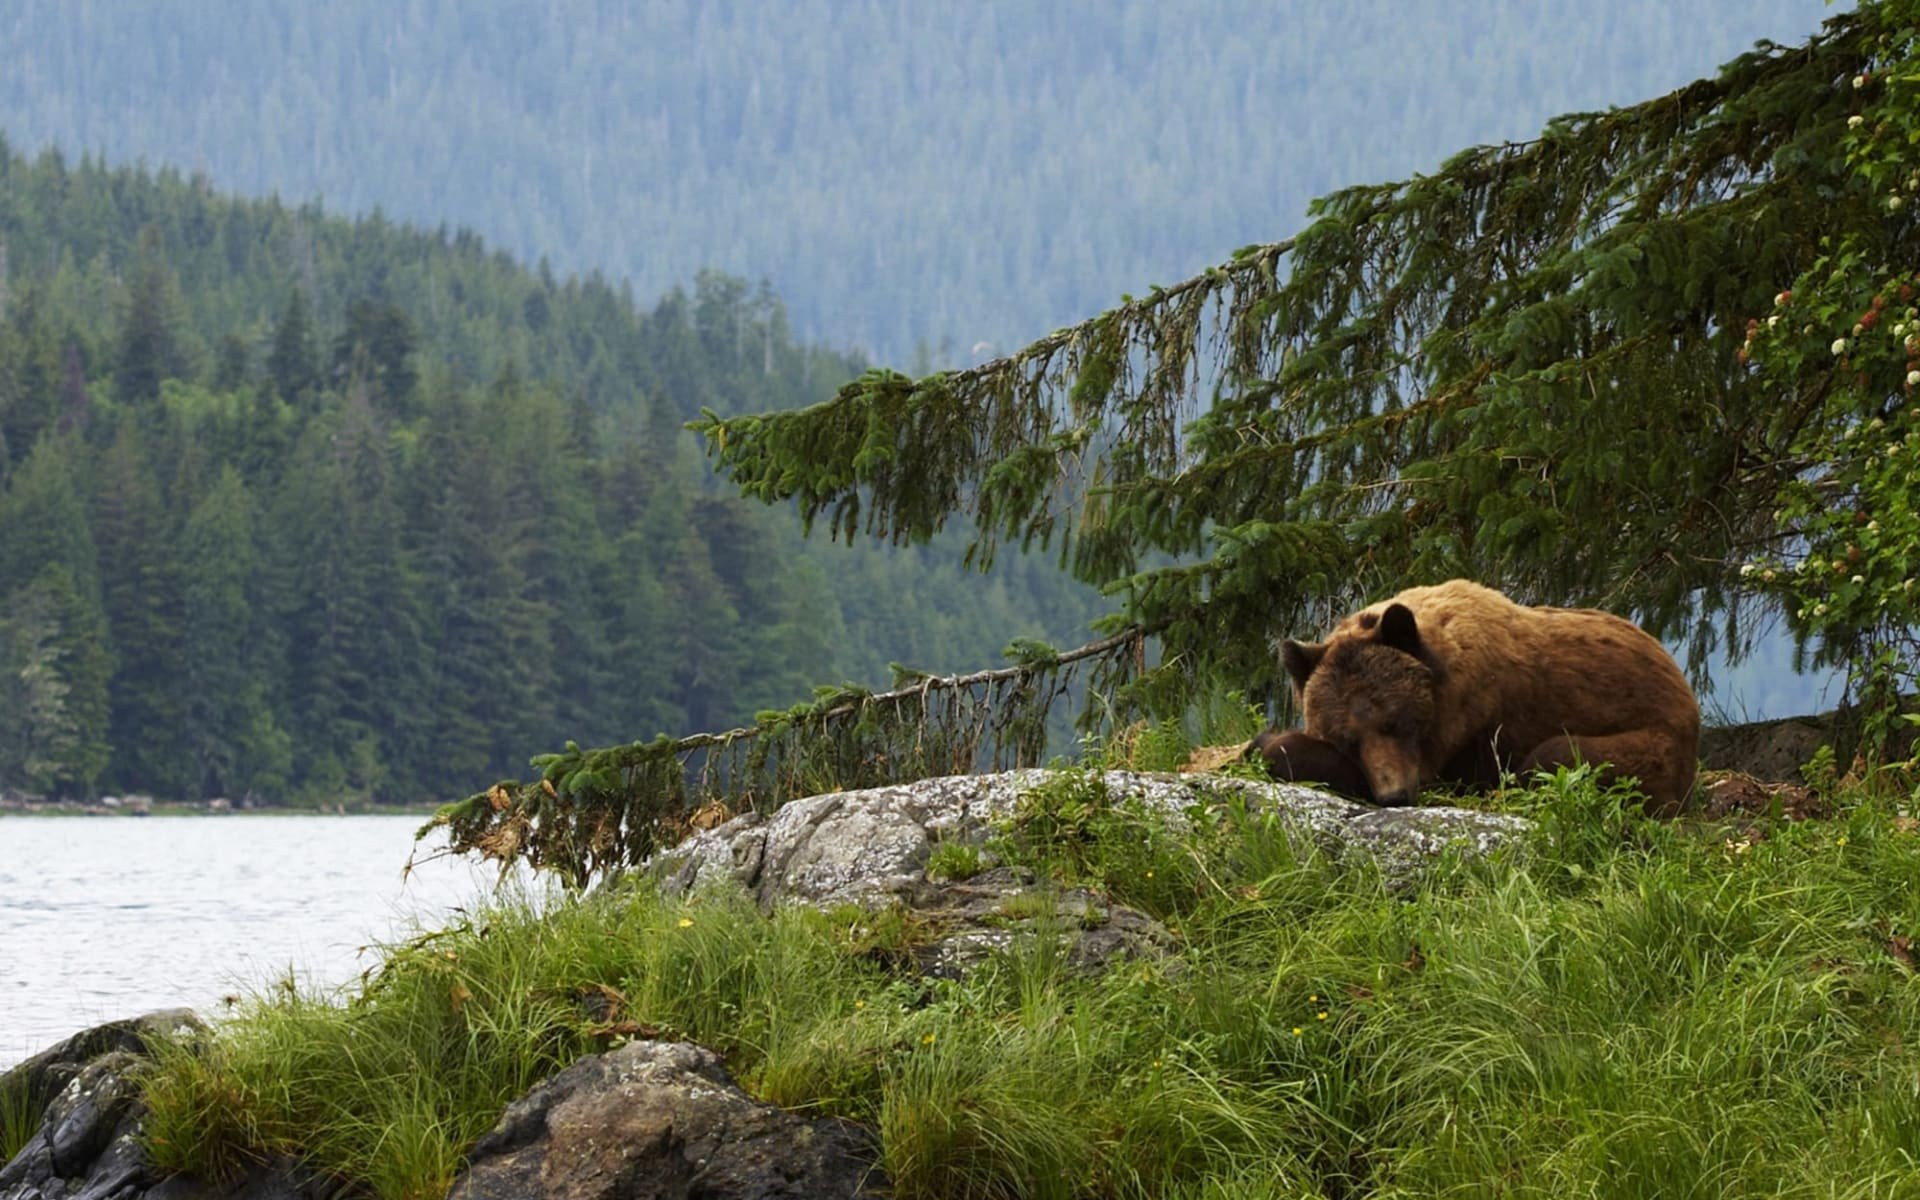 Bärenbeobachtung Knight Inlet Lodge 3 Tage ab Campbell River: activities: Knight Inlet Lodge - Bärenbeobachtung